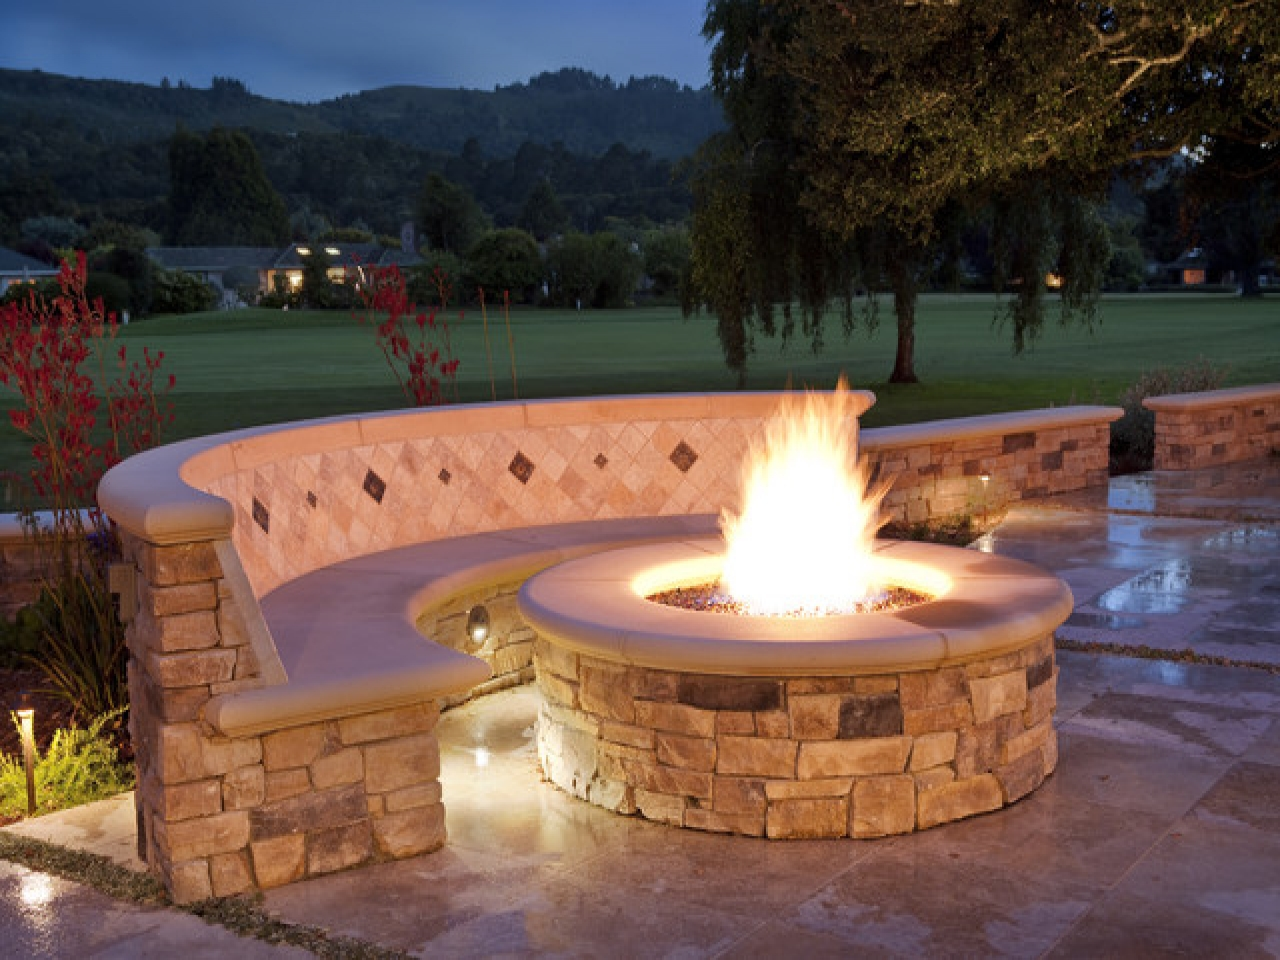 Fire Pit Patio Sets Outdoor Design Ideas Fbf2450d93261e